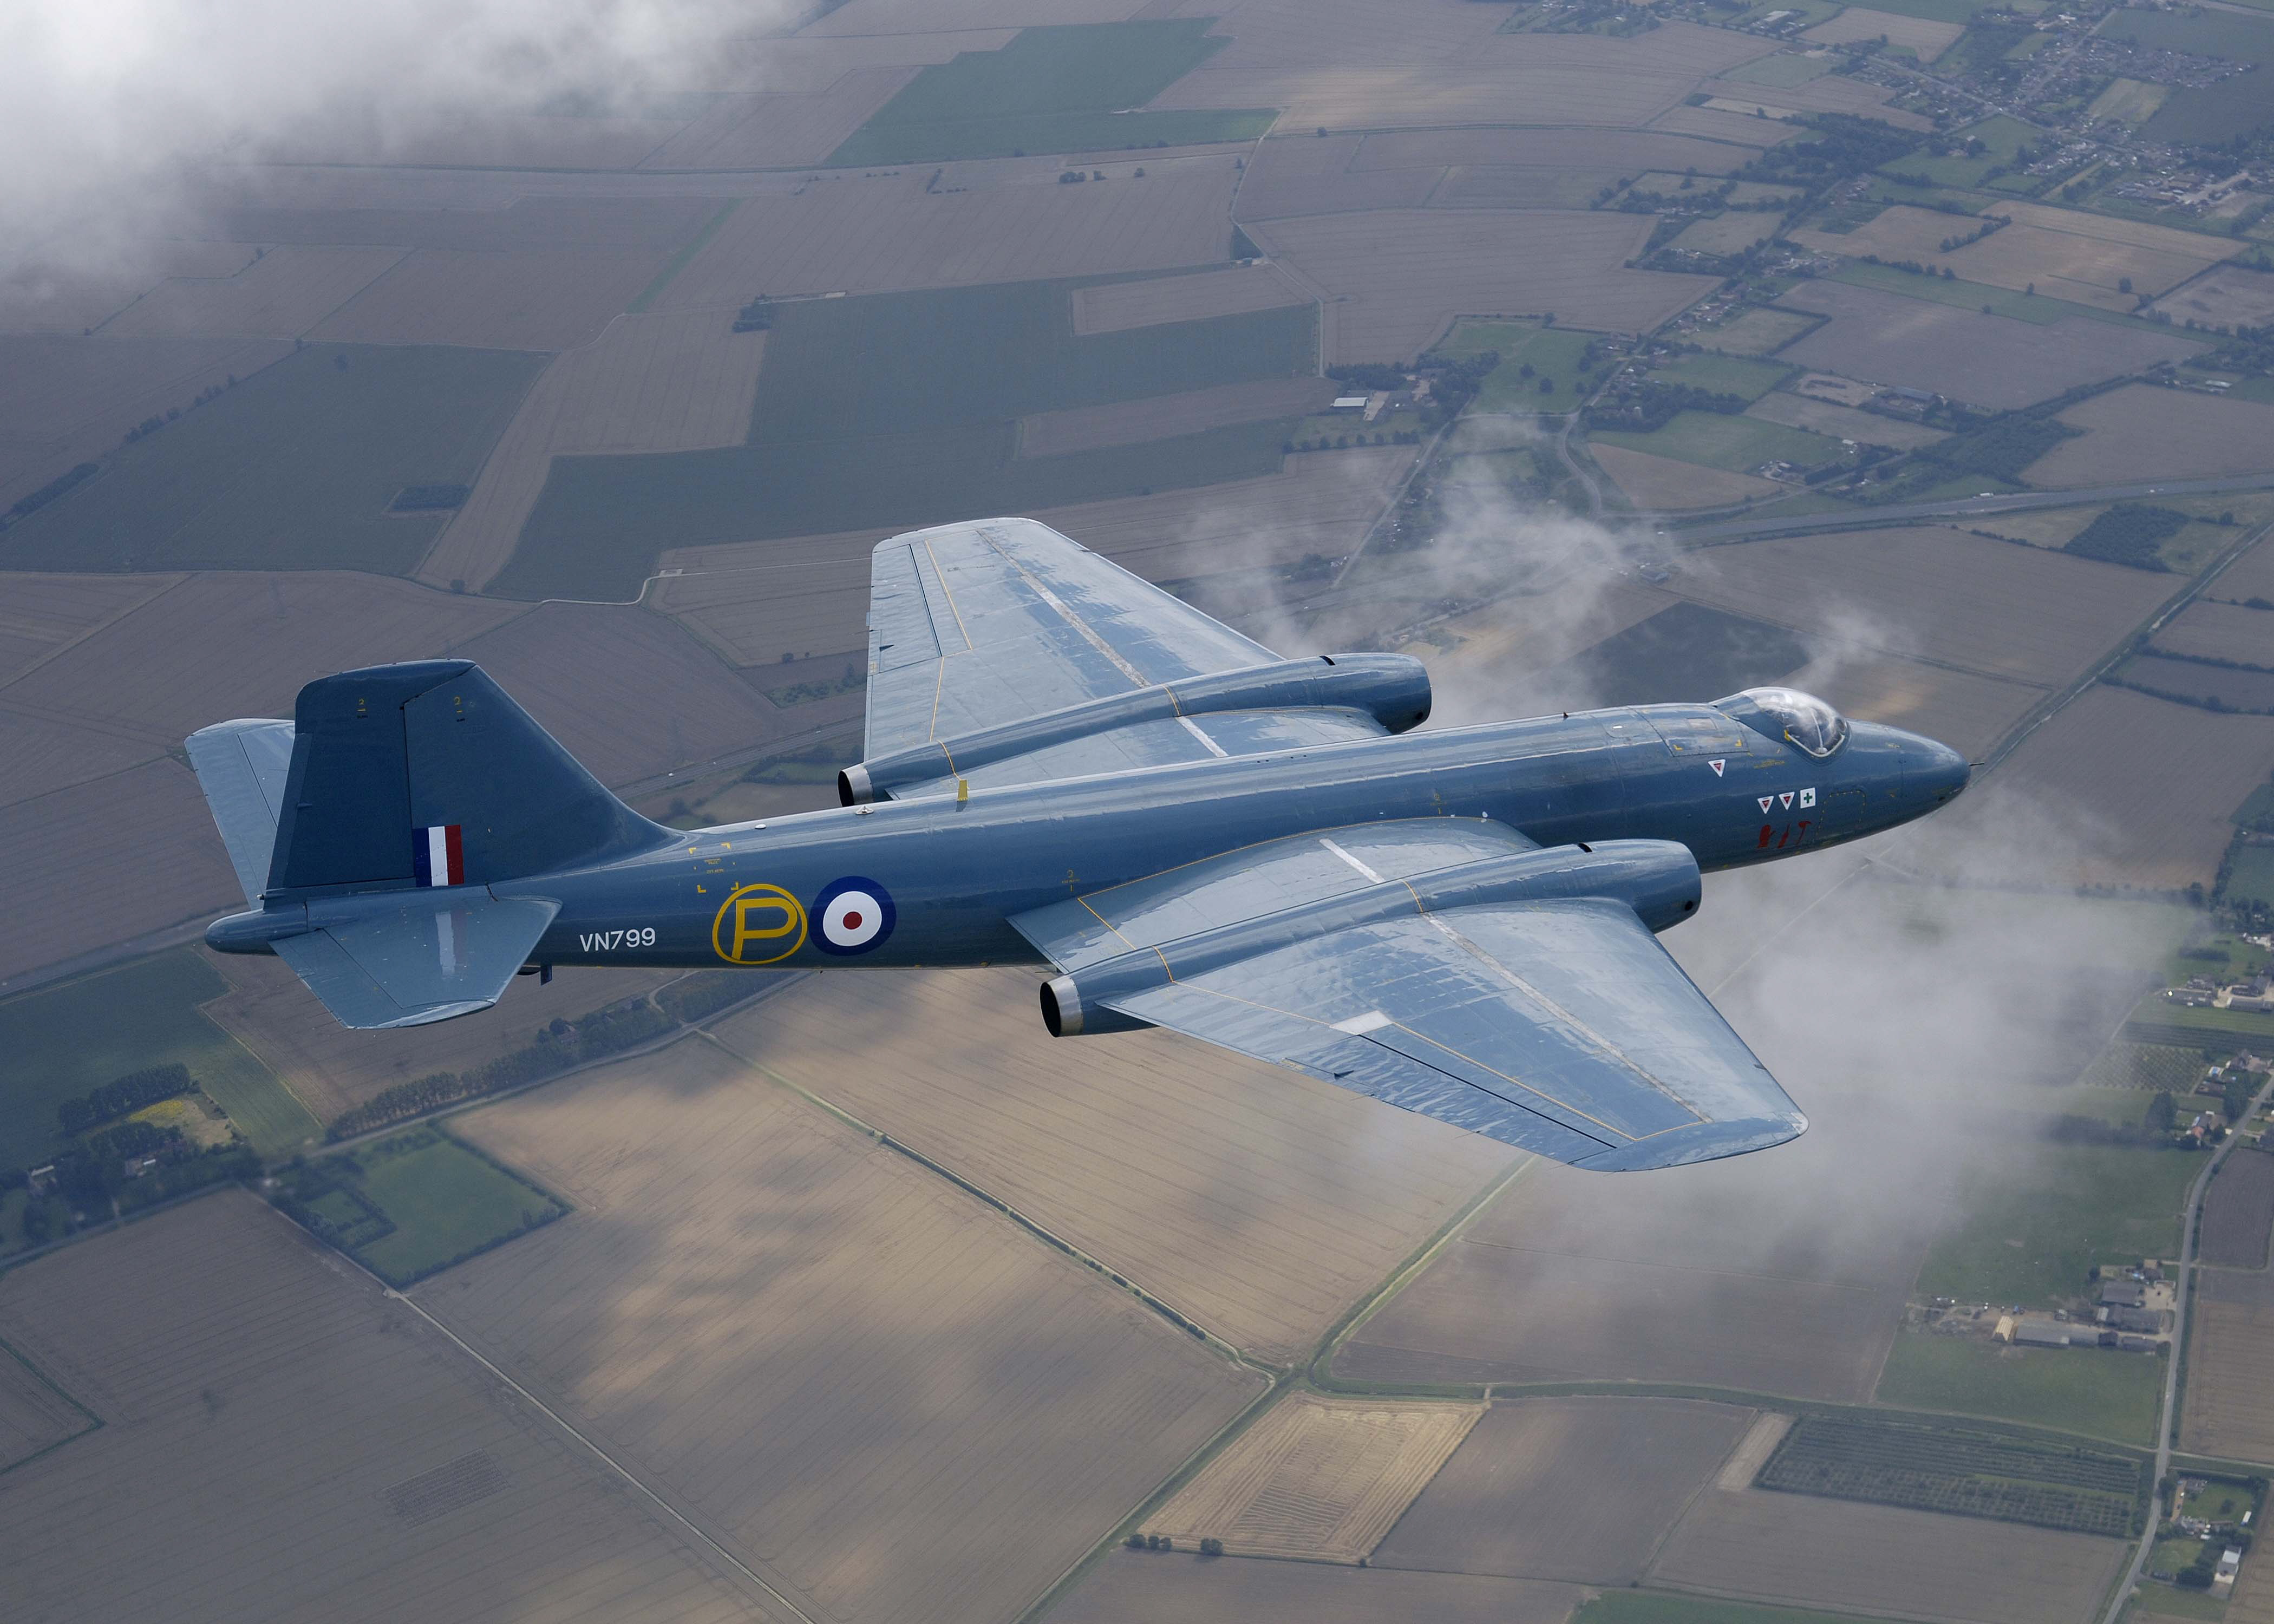 The Last Canberra: PR9 XH131 - Fascinating Little Book